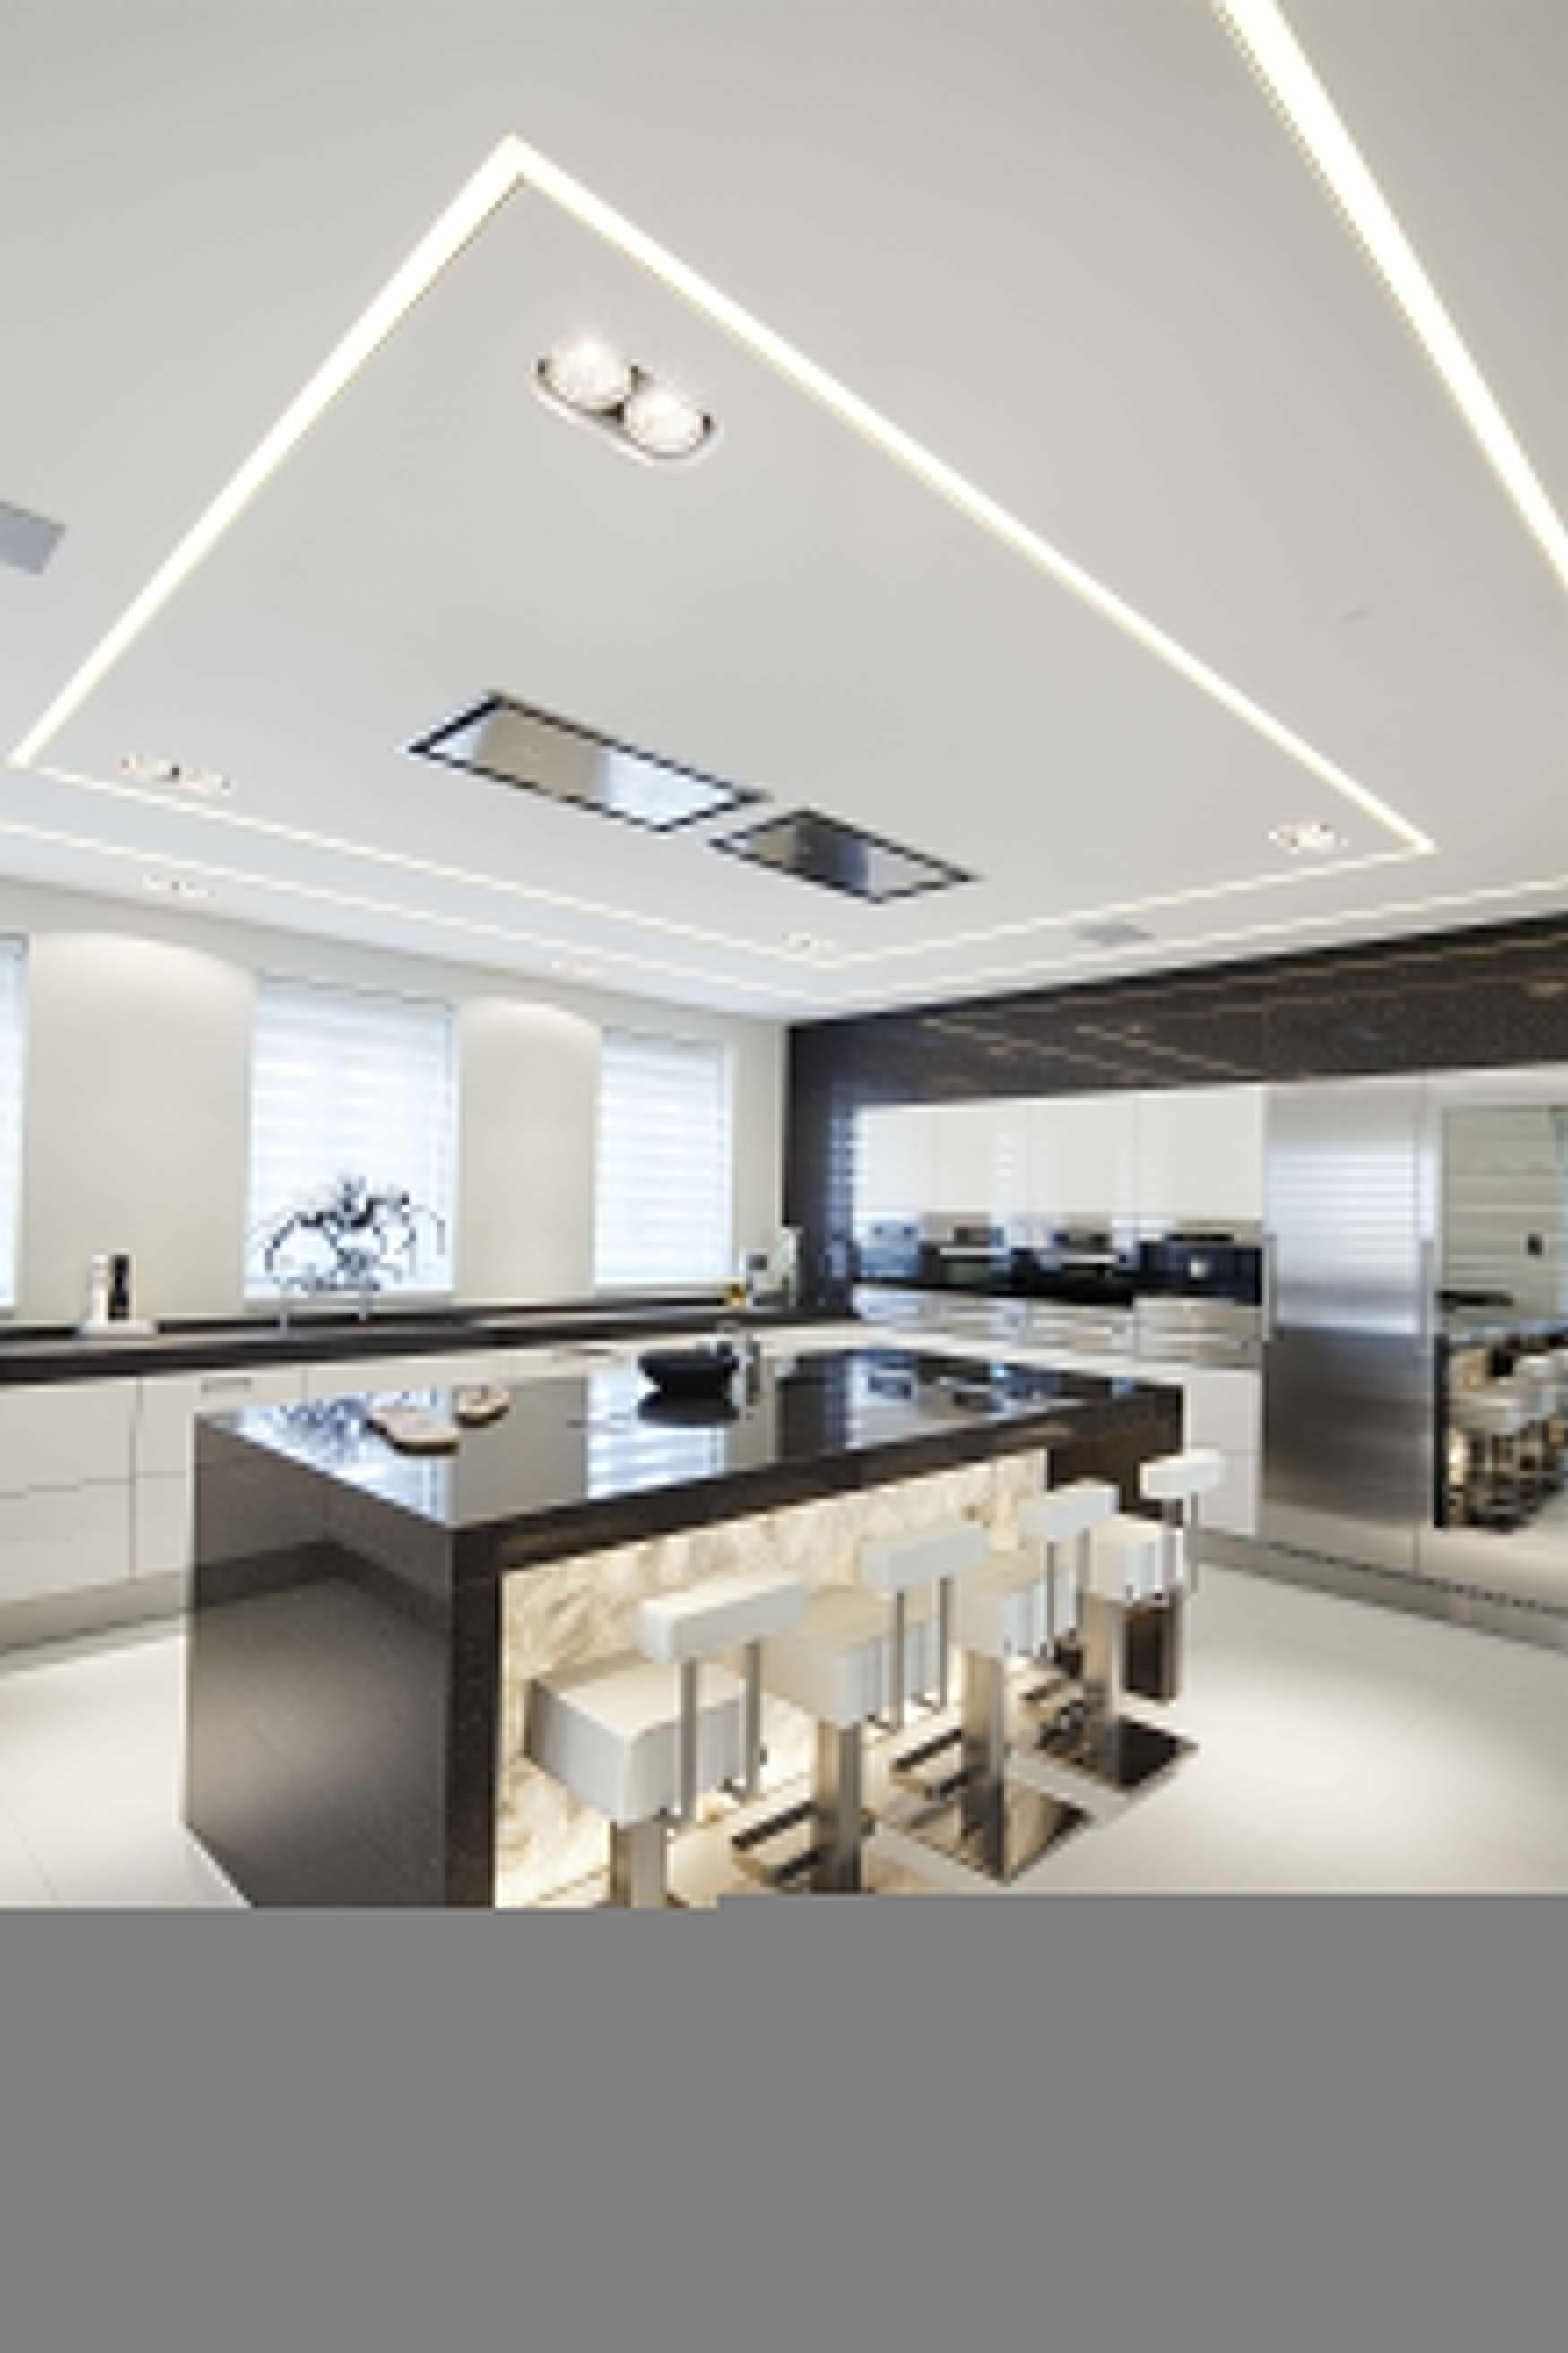 Kitchen Ceiling Fans Cool And Classic Design Of Ceiling Fans Modern Kitchen Design House Ceiling Design Ceiling Fan In Kitchen